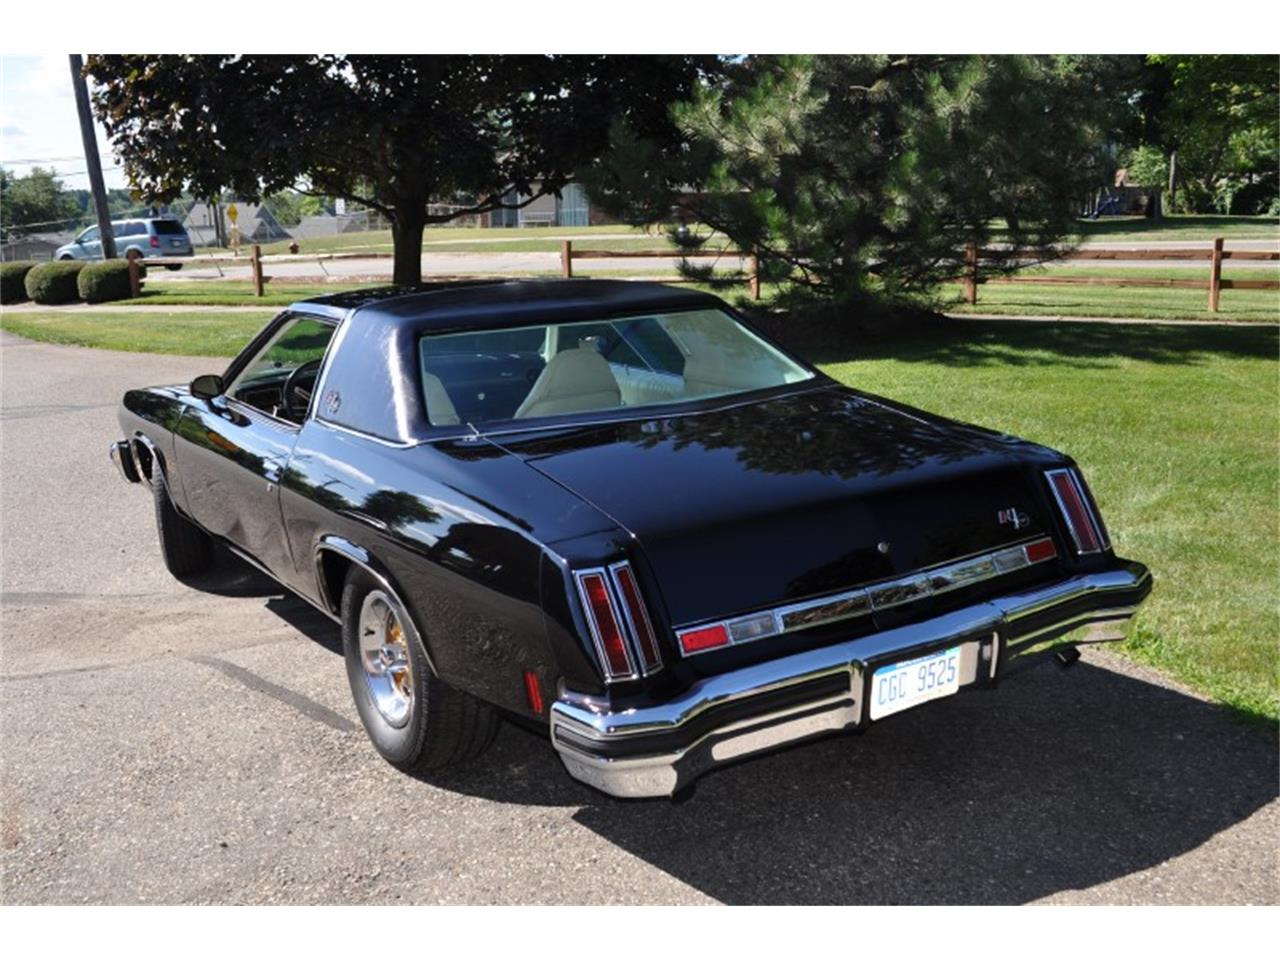 Large Picture of '75 Oldsmobile 442 located in Clarkston Michigan - $22,500.00 Offered by Sleeman's Classic Cars - J4WG